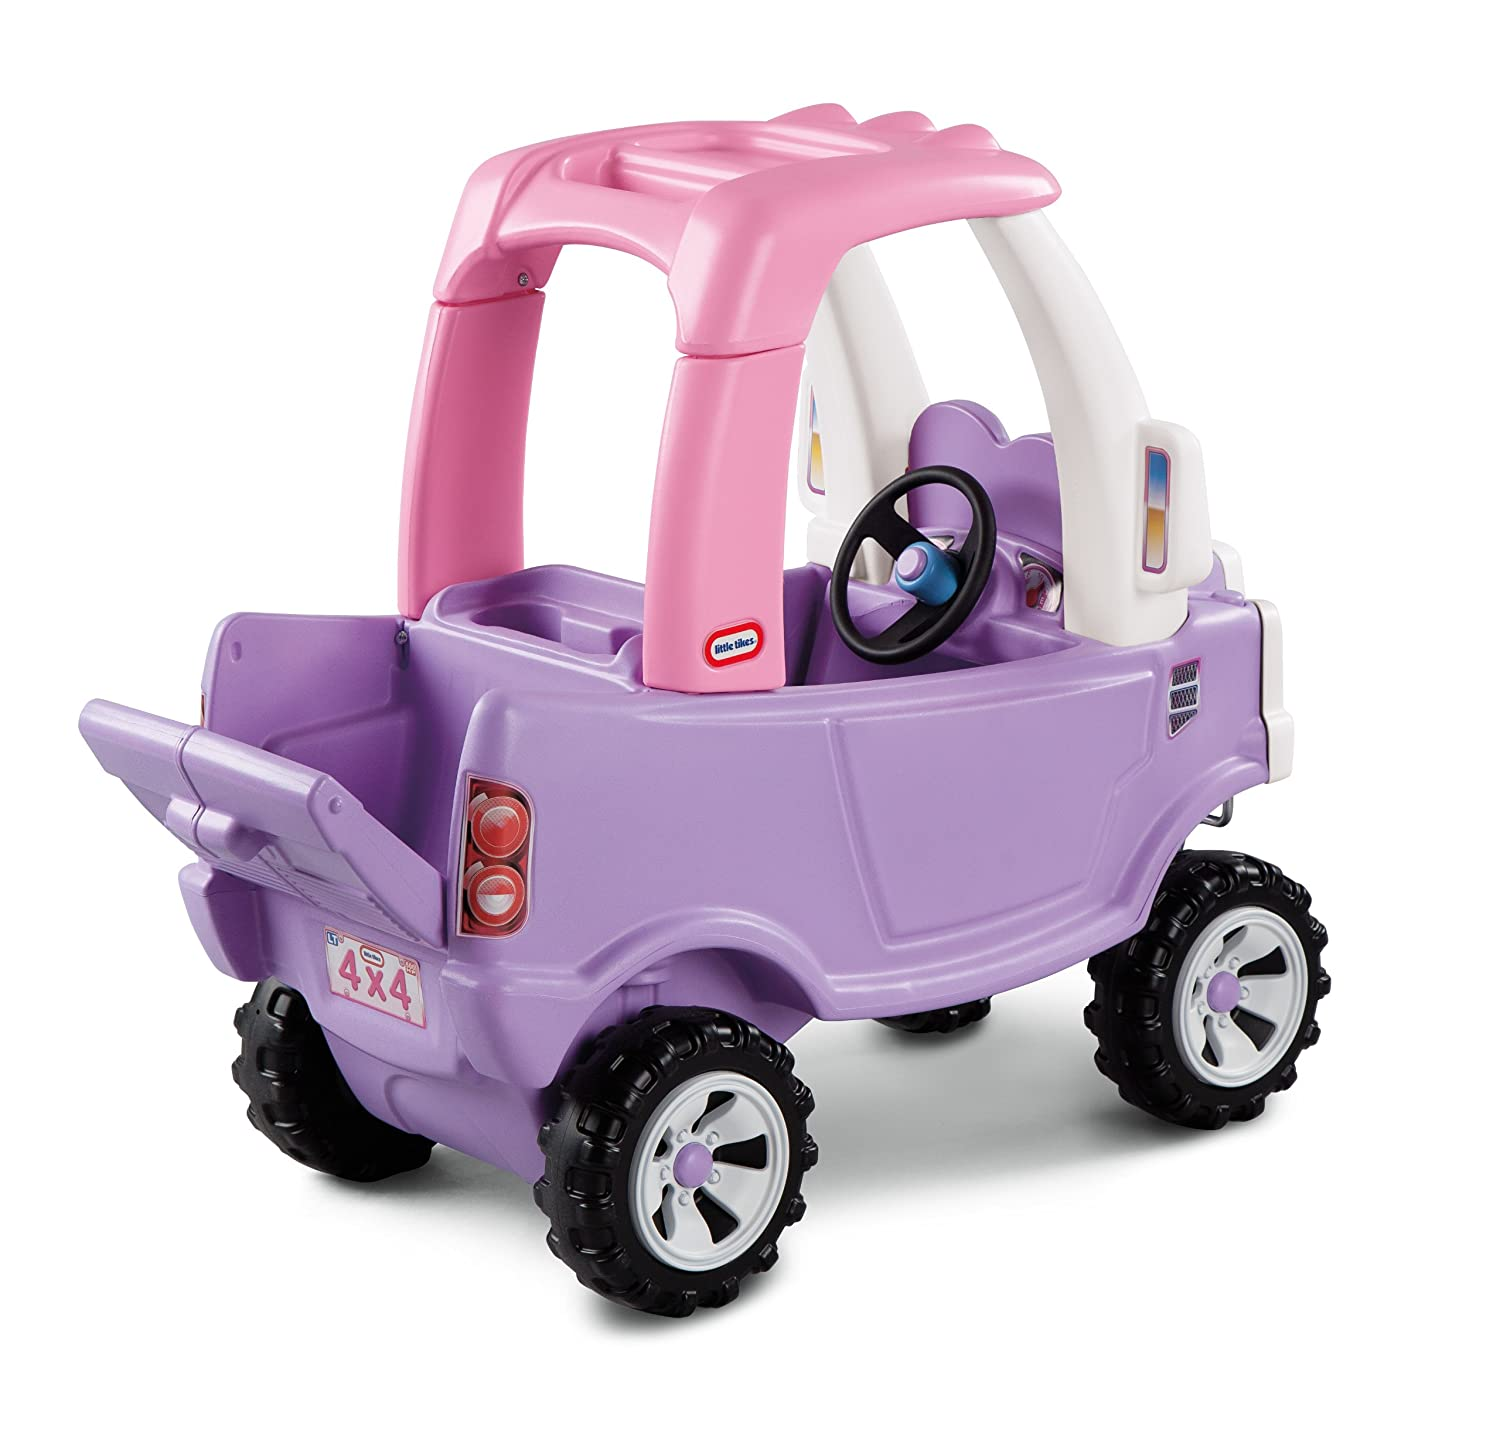 An Image of Little Tikes Princess Cozy Truck Ride-On